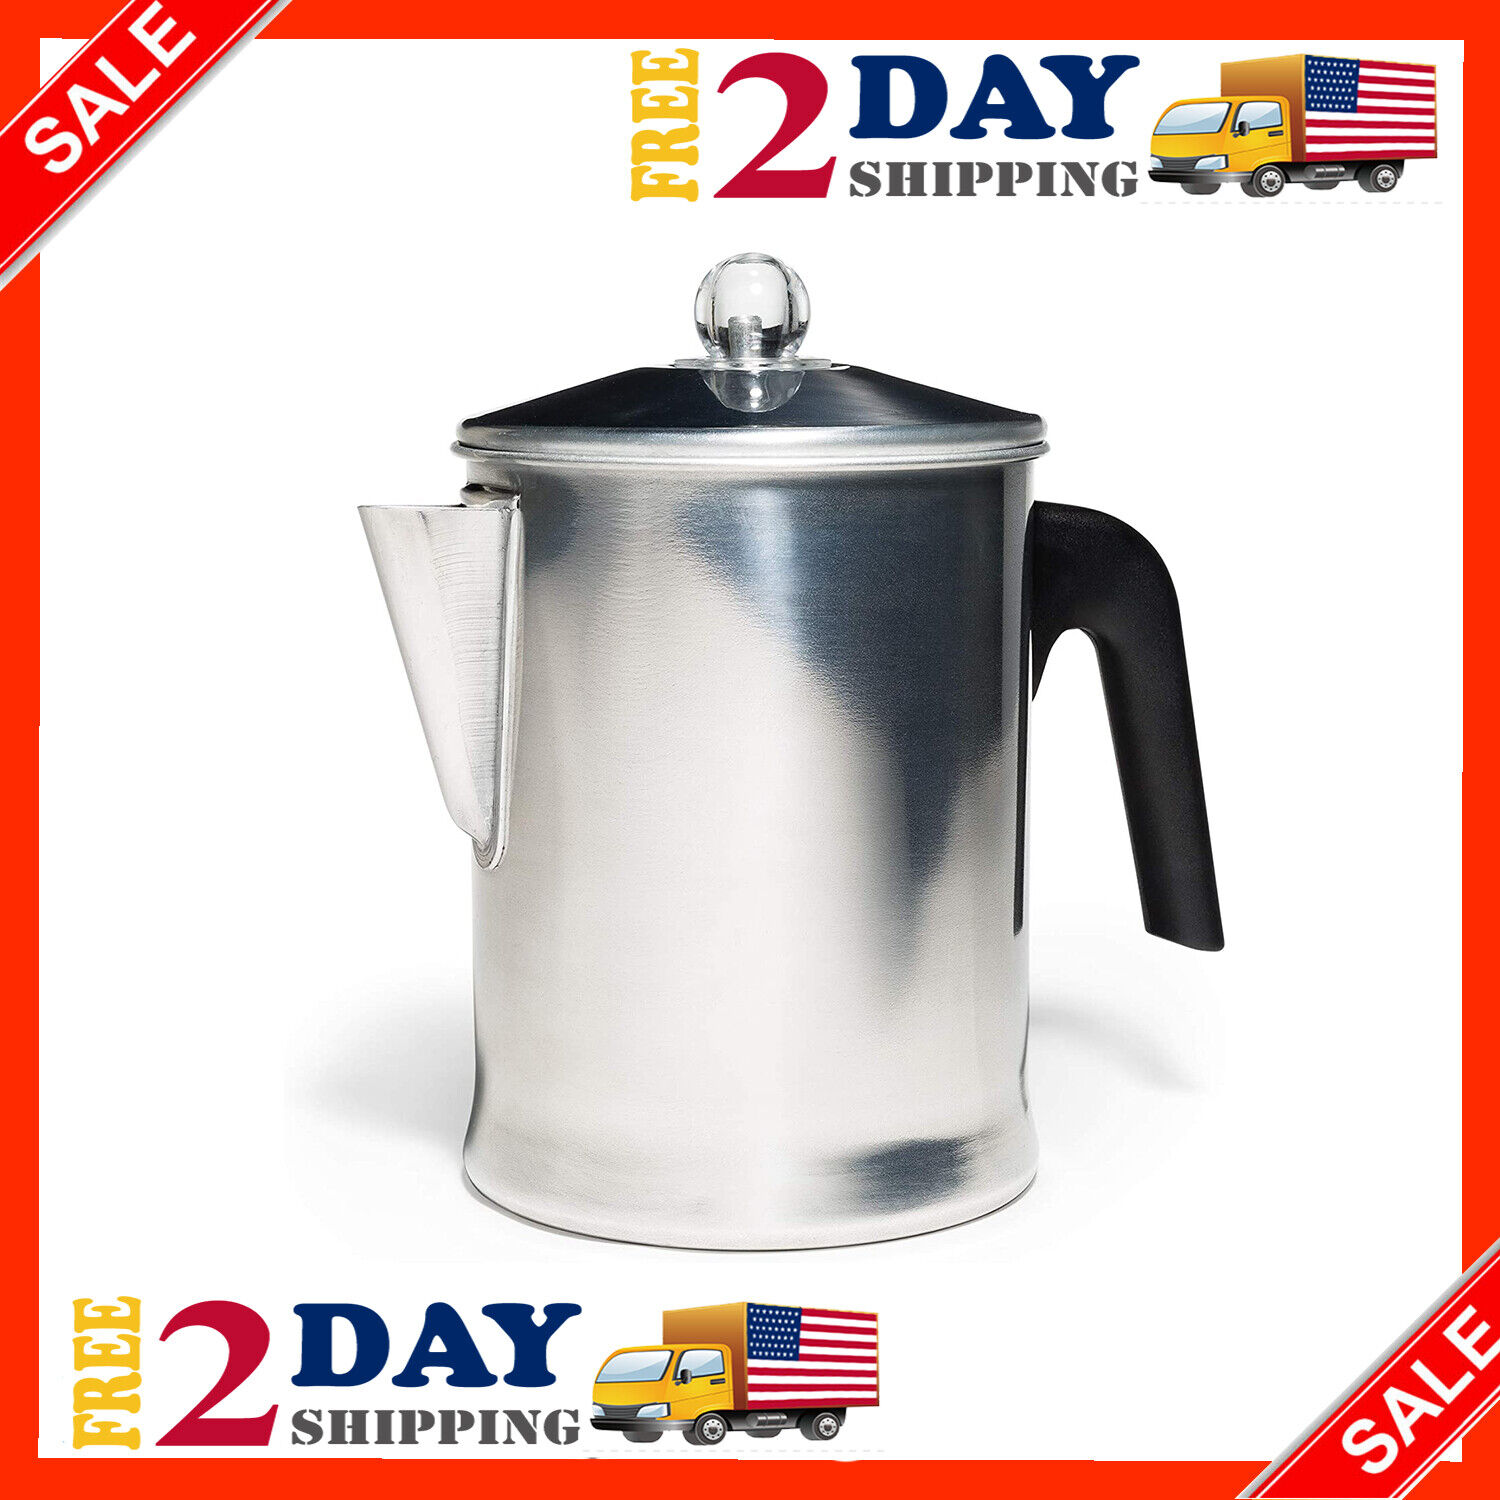 Farberware Stovetop Percolator Heavy Duty Aluminum Yosemite